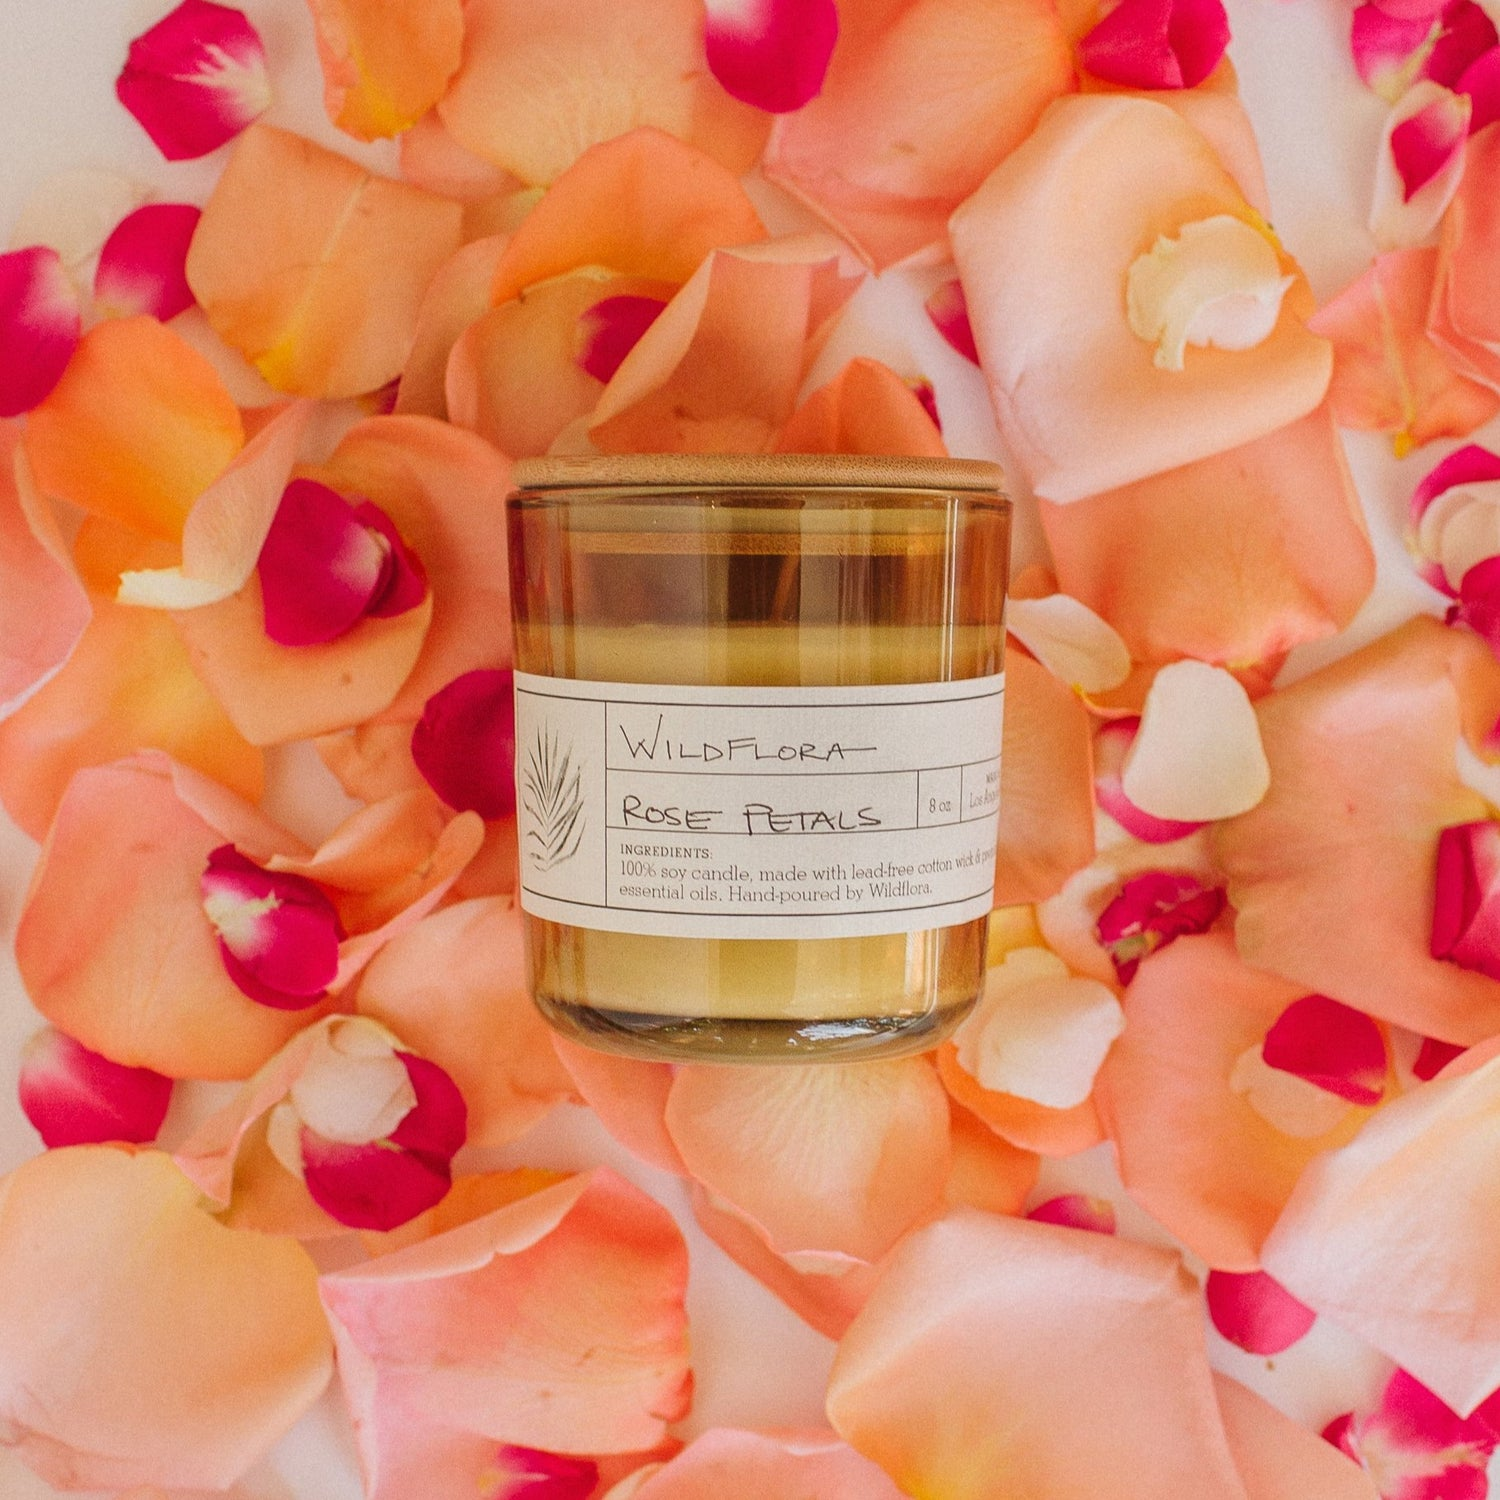 Limited Edition Rose Petals Single Wick Candle